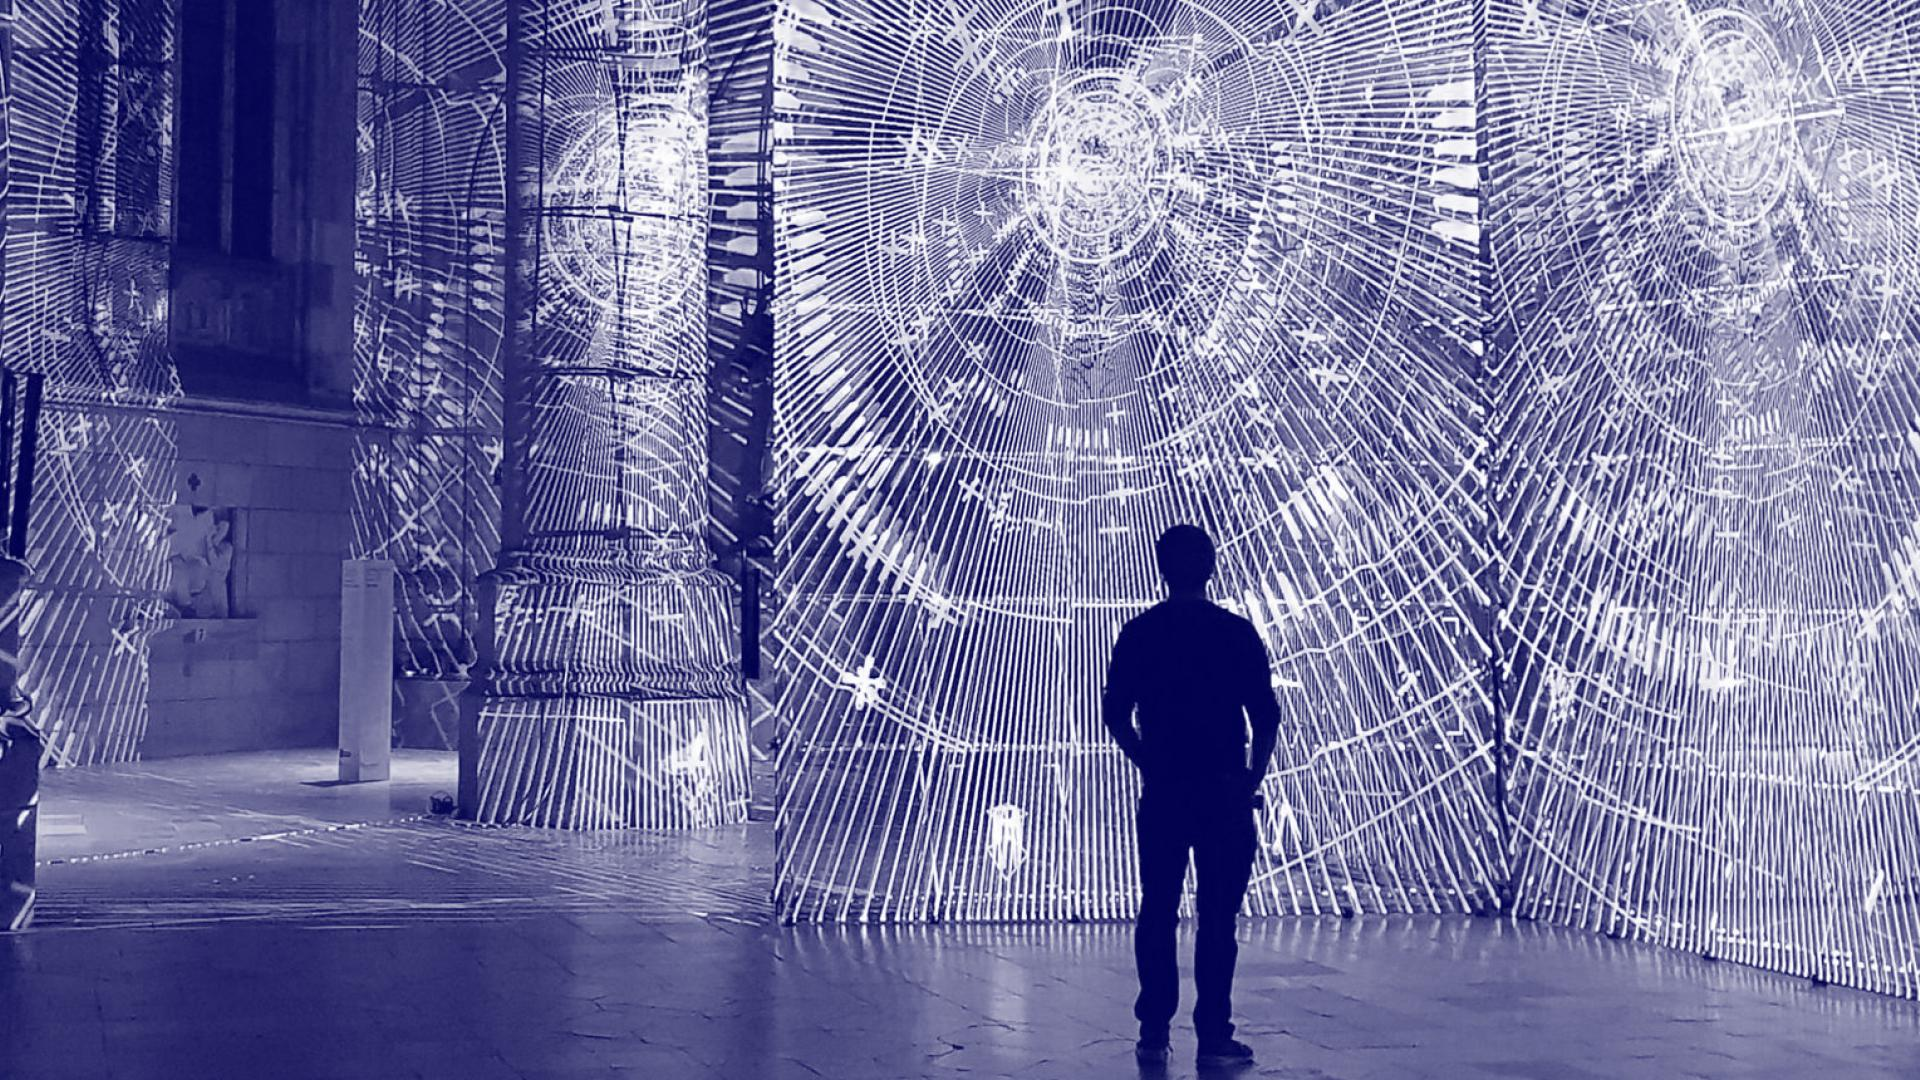 Zdjęcie przedstawia mężczyznę stojącego przed instalacją wizualną | The picture shows a man standing in front of a visual installation